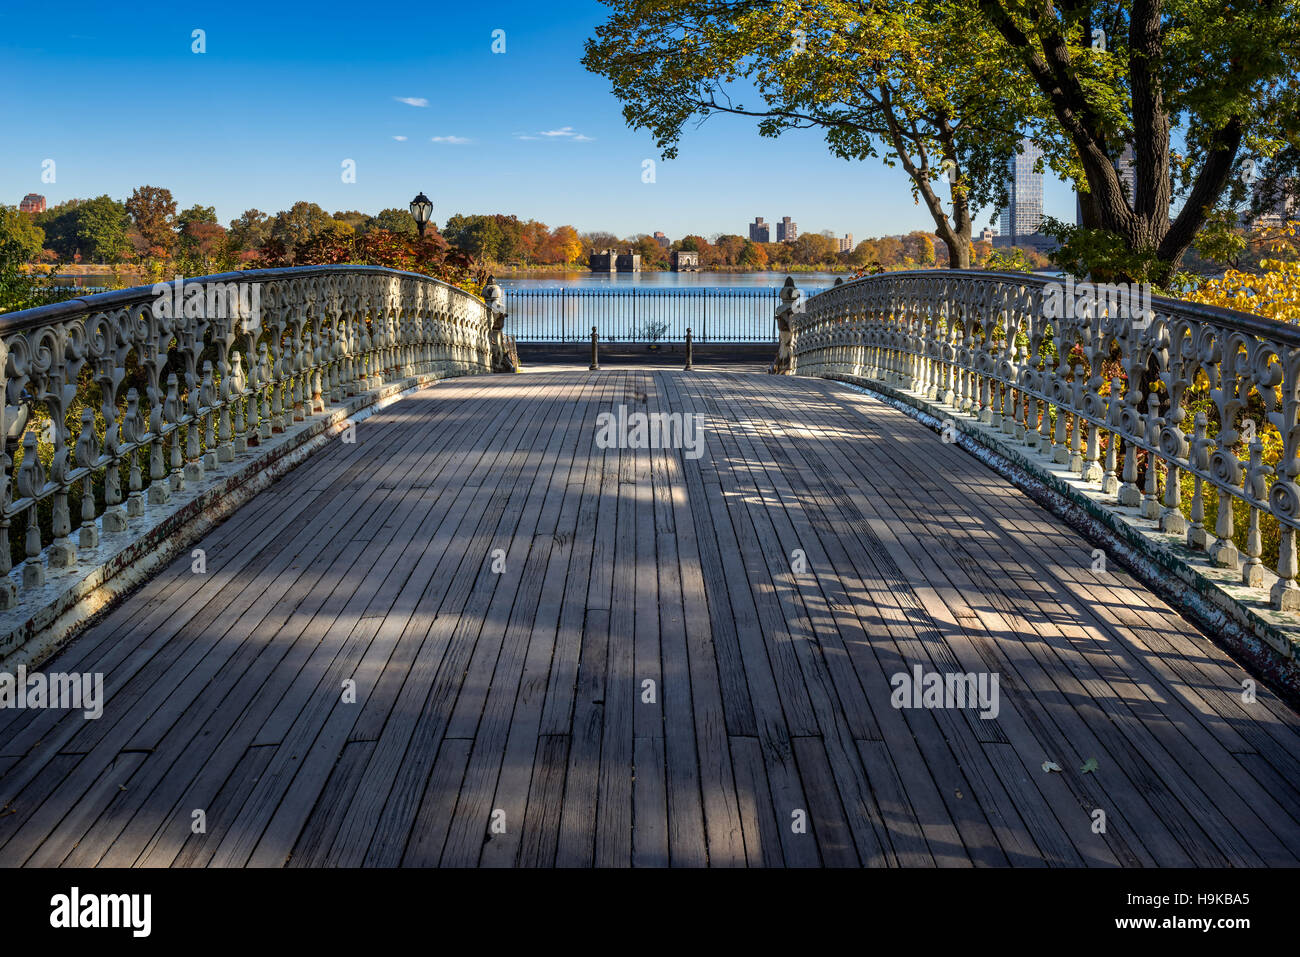 Pont n° 27 dans Central Park avec vue sur le Jacqueline Kennedy Onassis Reservoir en automne. Upper West Side, Photo Stock